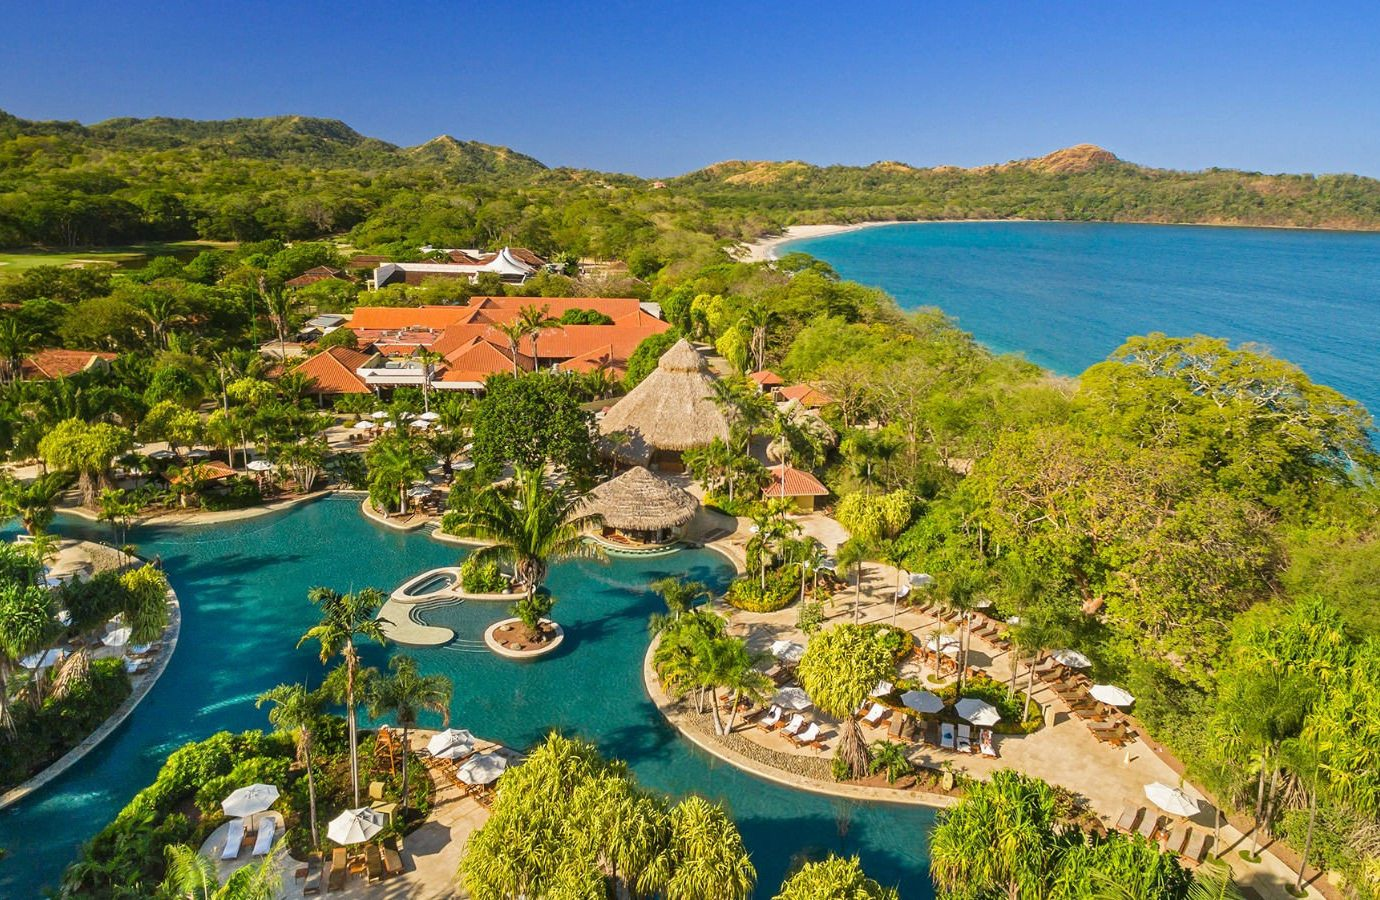 Beach Hotels sky outdoor water Nature Resort leisure promontory resort town tourism aerial photography estate bay bird's eye view Coast mount scenery real estate reef inlet